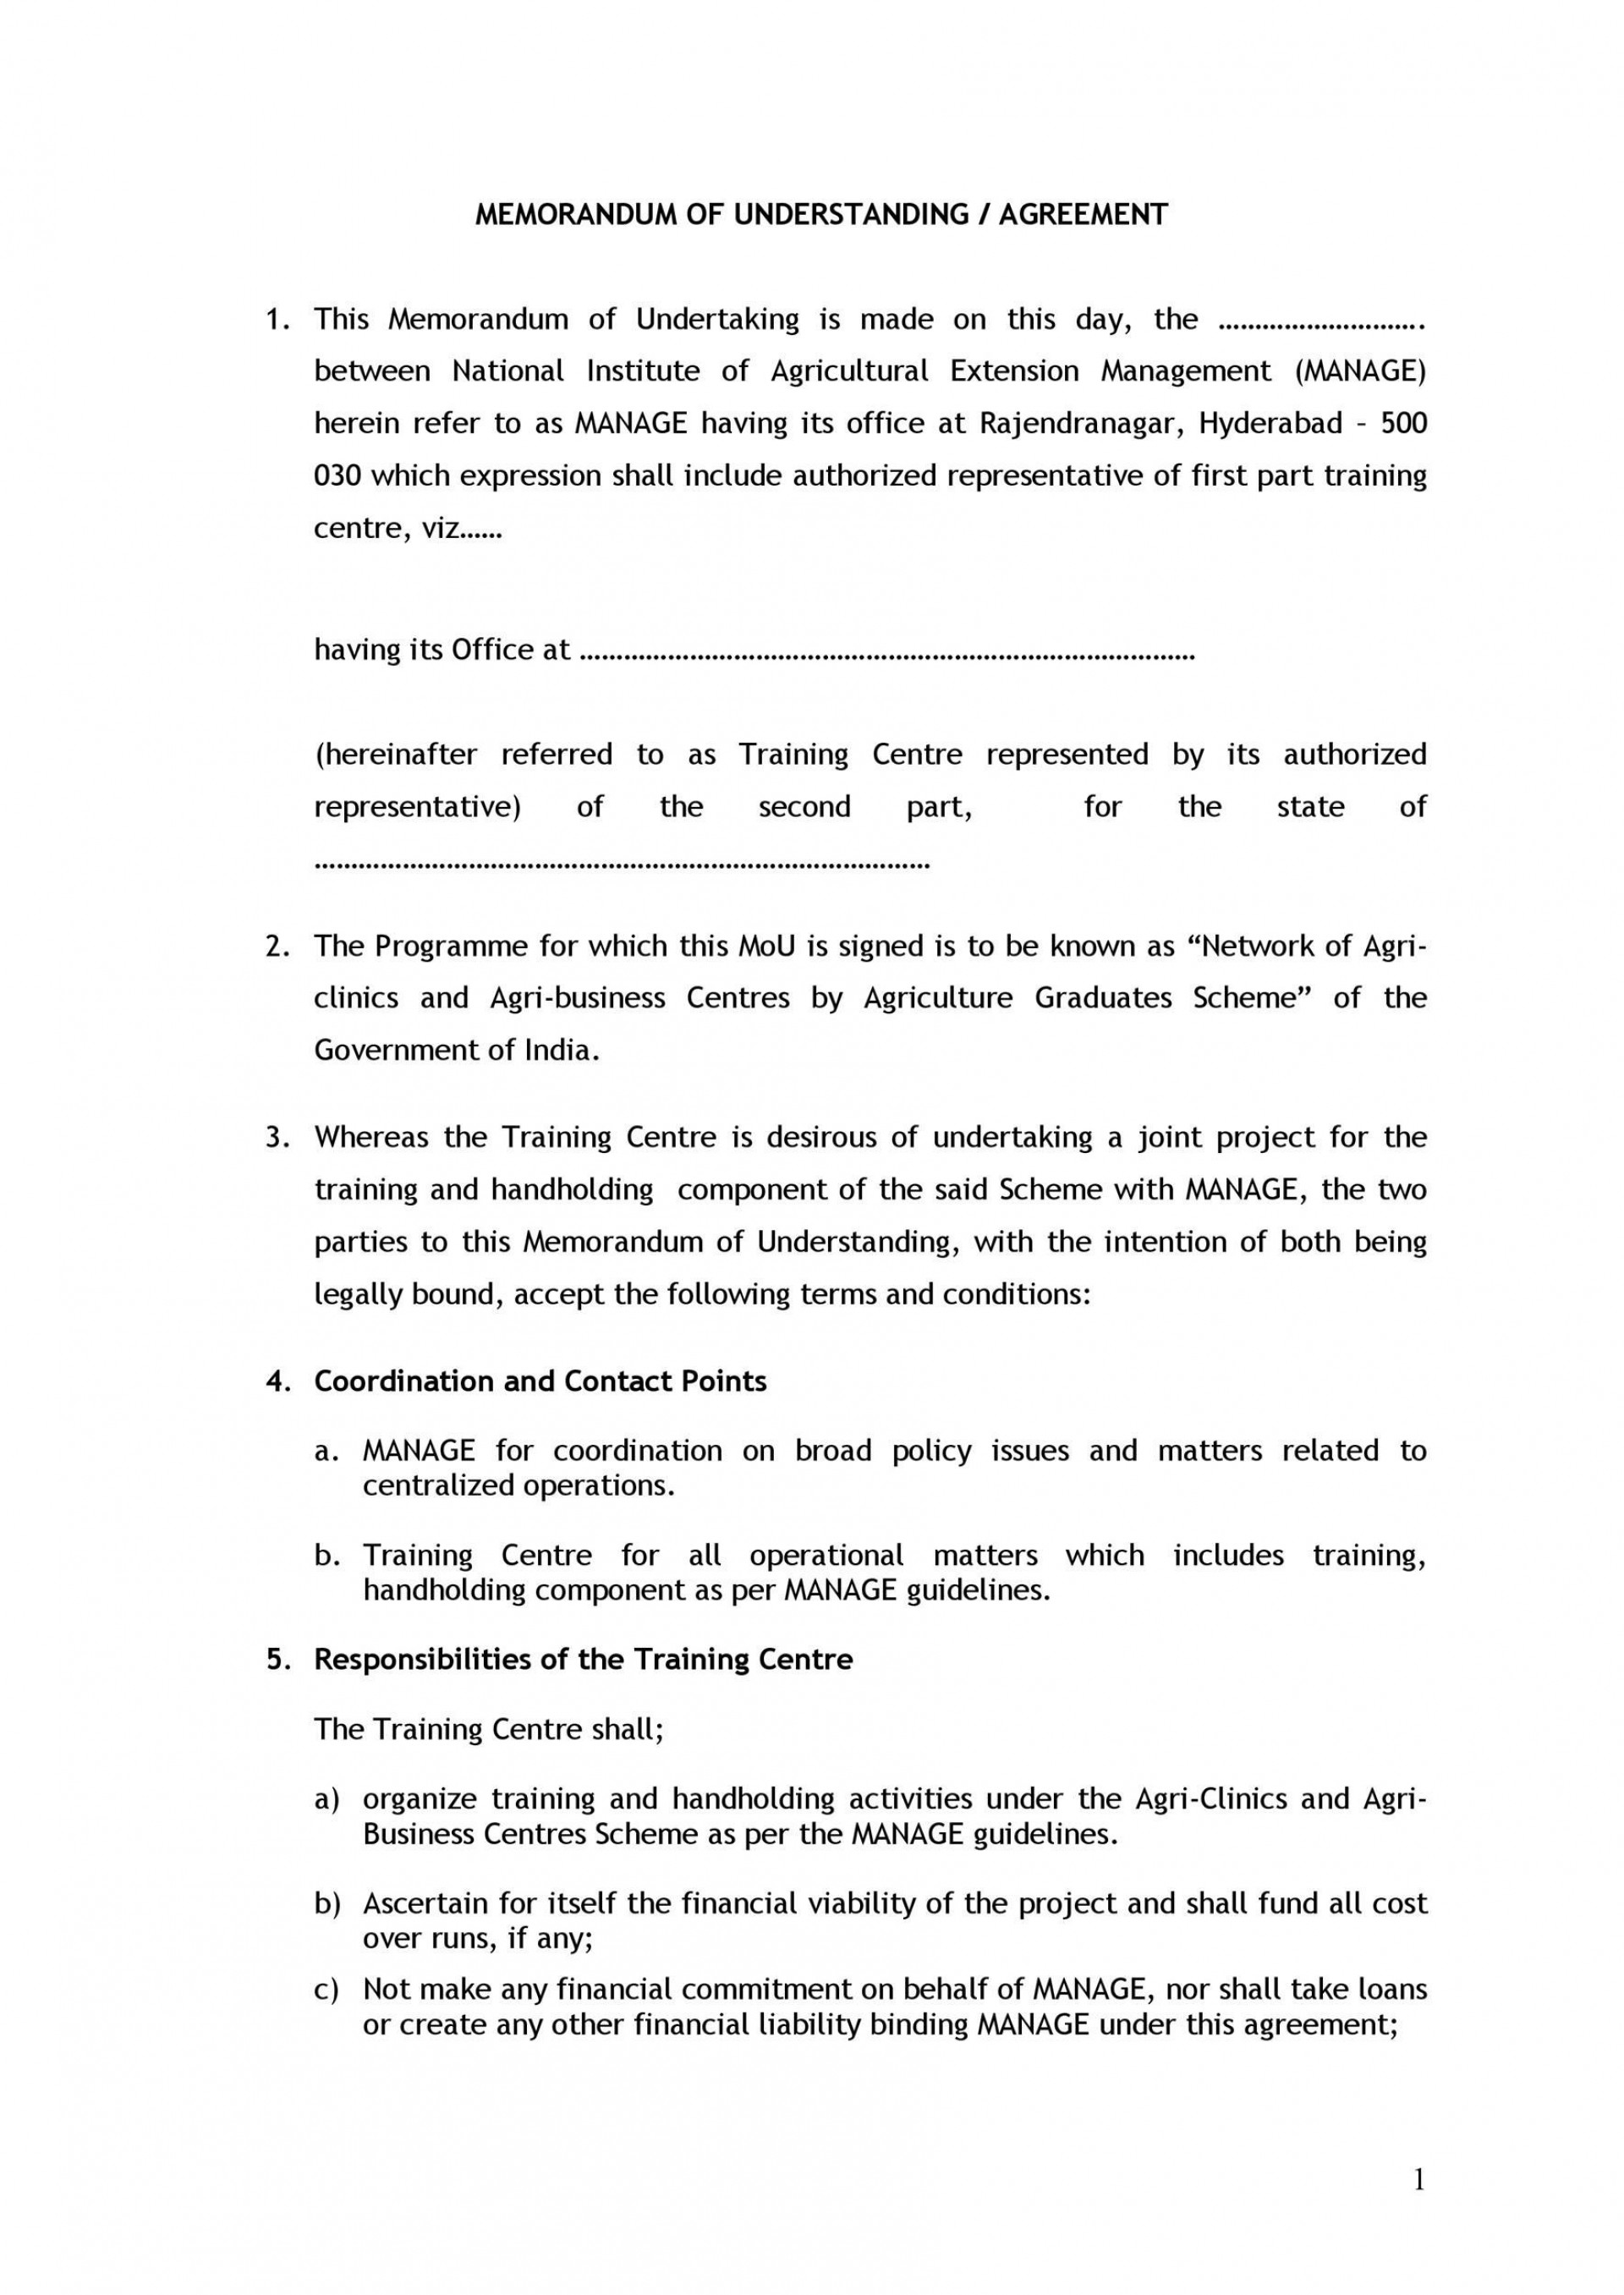 009 Outstanding Memorandum Of Agreement Template Highest Clarity  Templates Sample Tagalog South Africa Philippine Doc1920